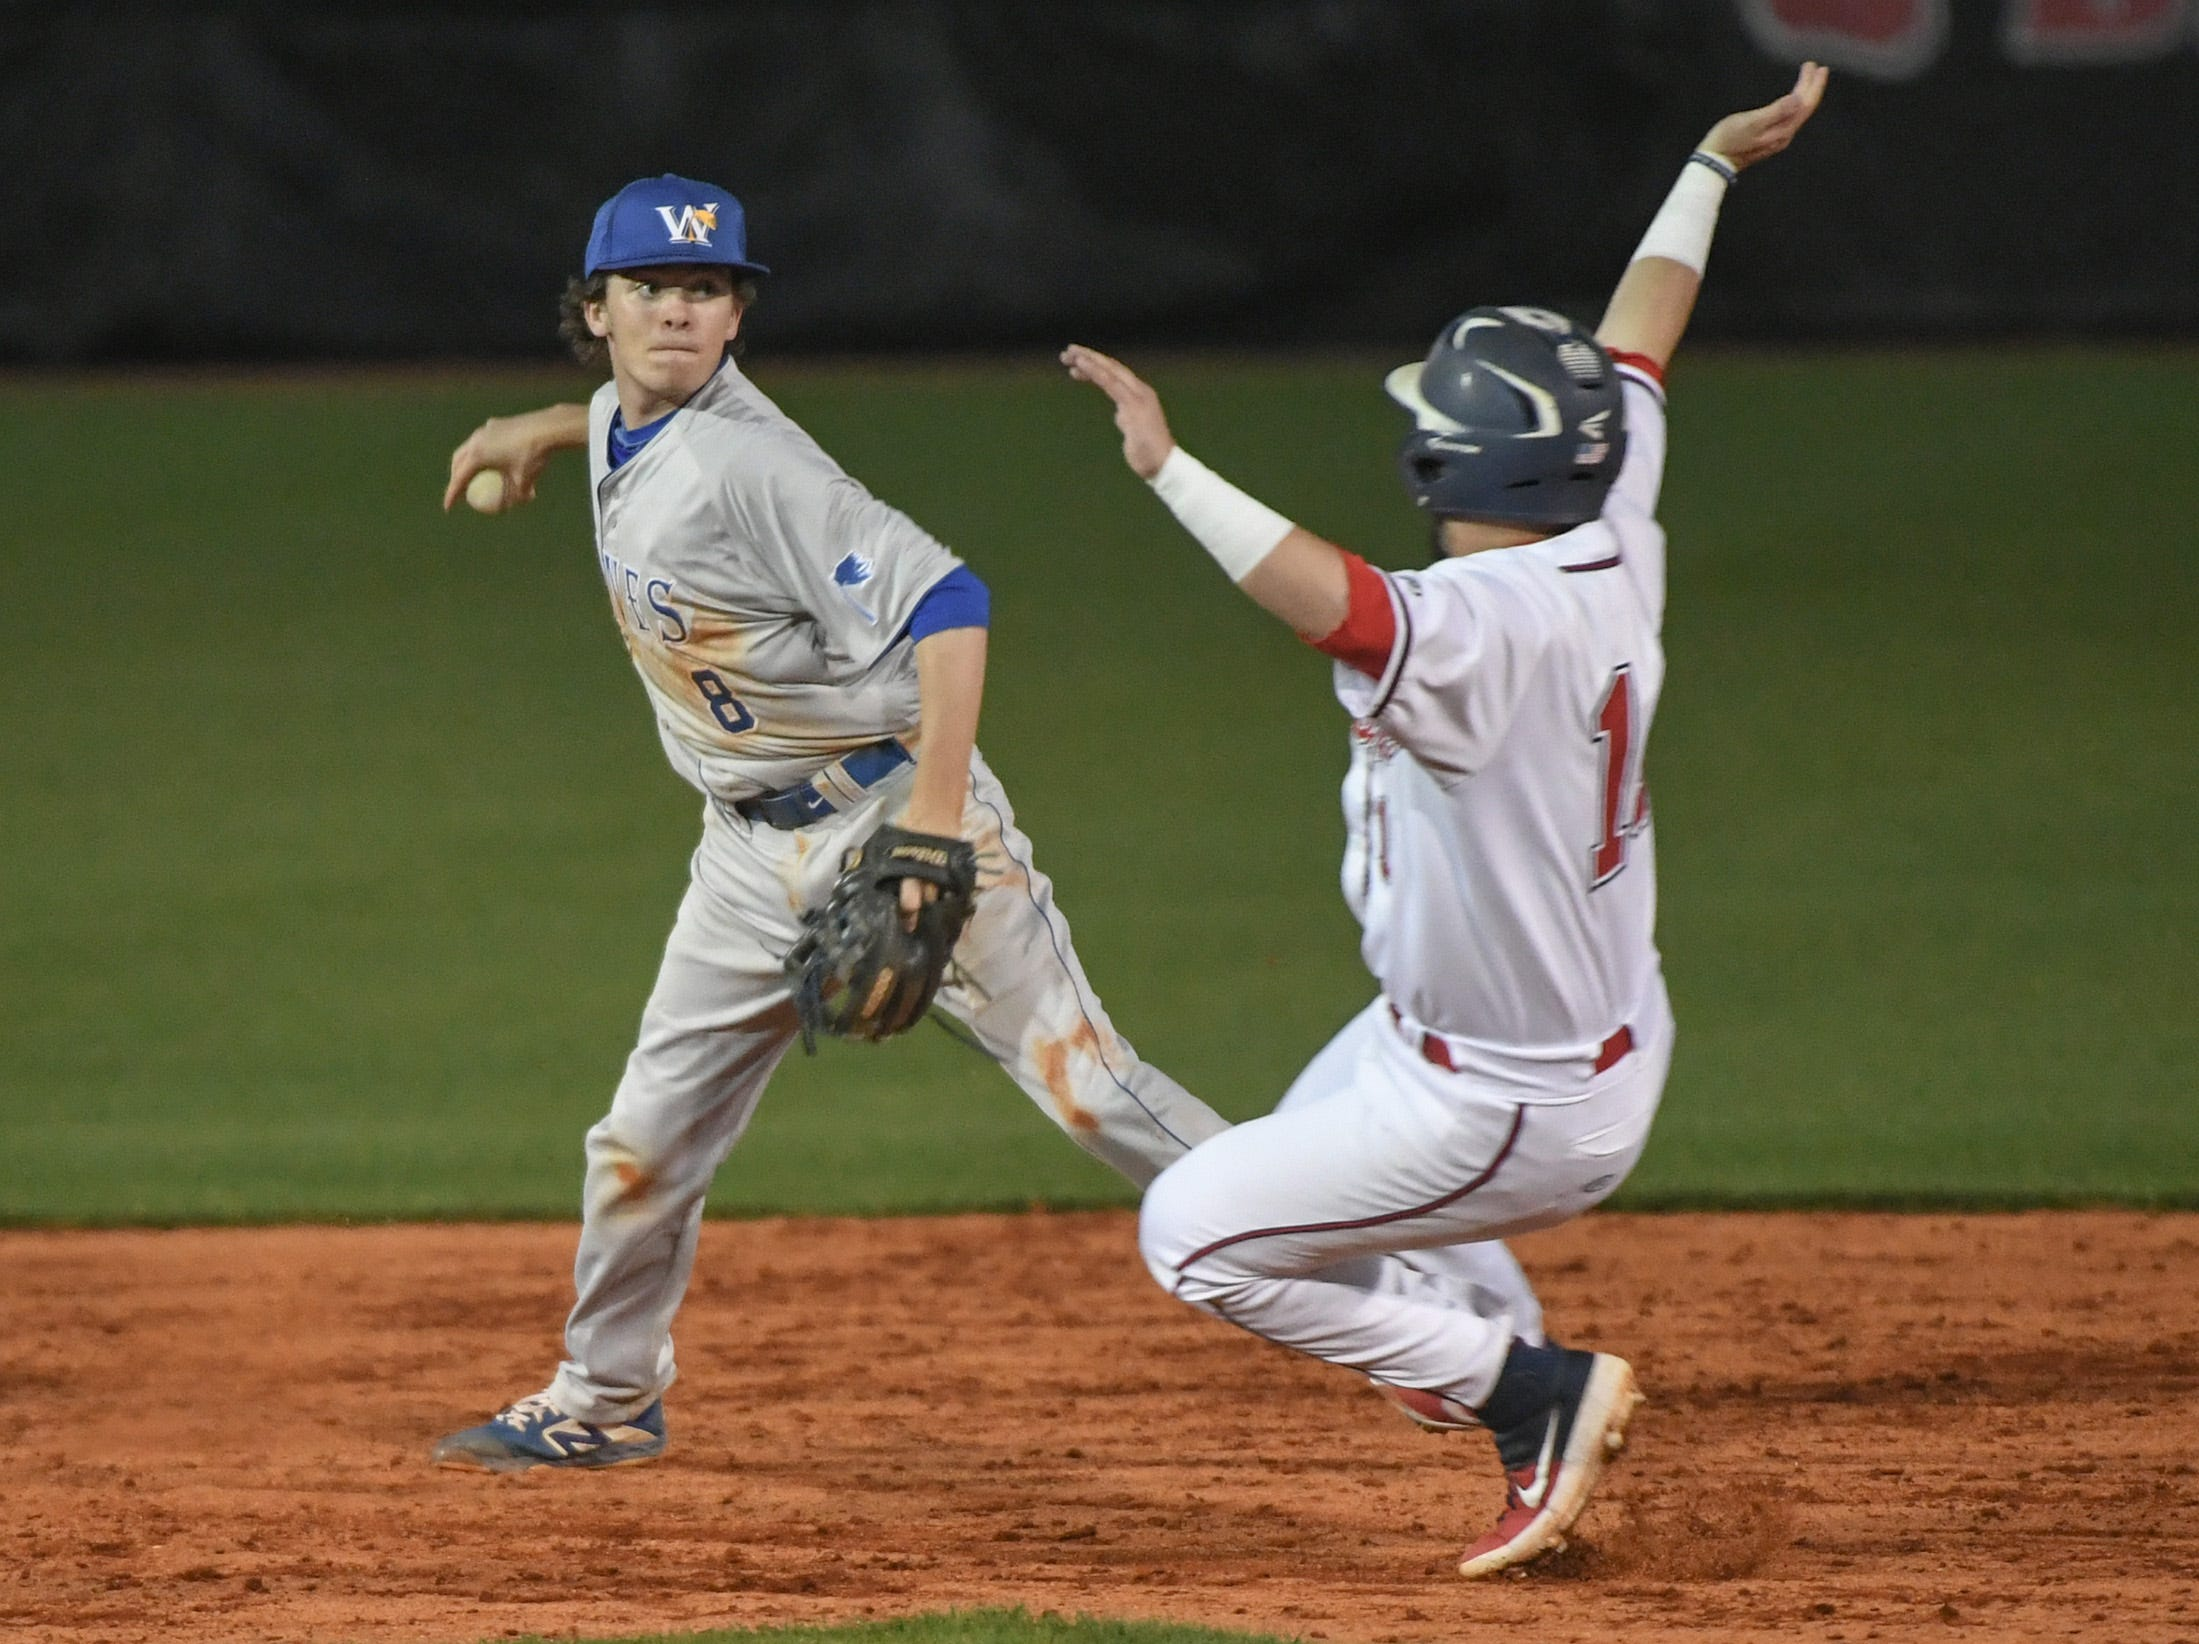 Wren shortstop Cam Williams (8) turns a double play over Belton-Honea Path senior Braden Galloway (11) during the bottom of the sixth inning at Belton-Honea Path High School in Honea Path Wednesday, April 10, 2019.